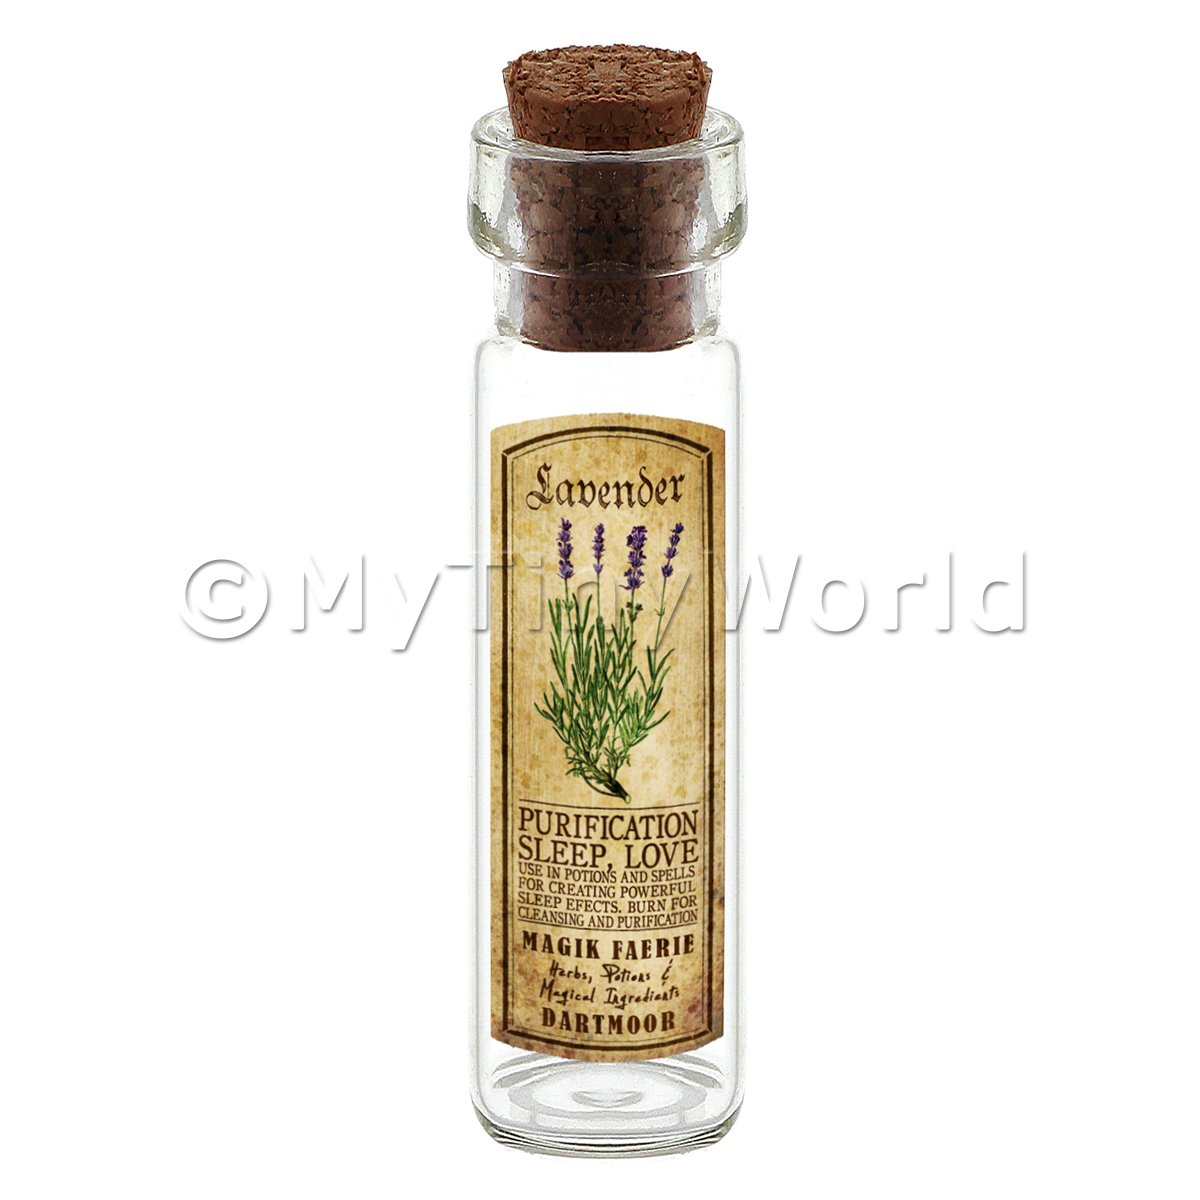 Dolls House Apothecary Lavender Herb Long Colour Label And Bottle